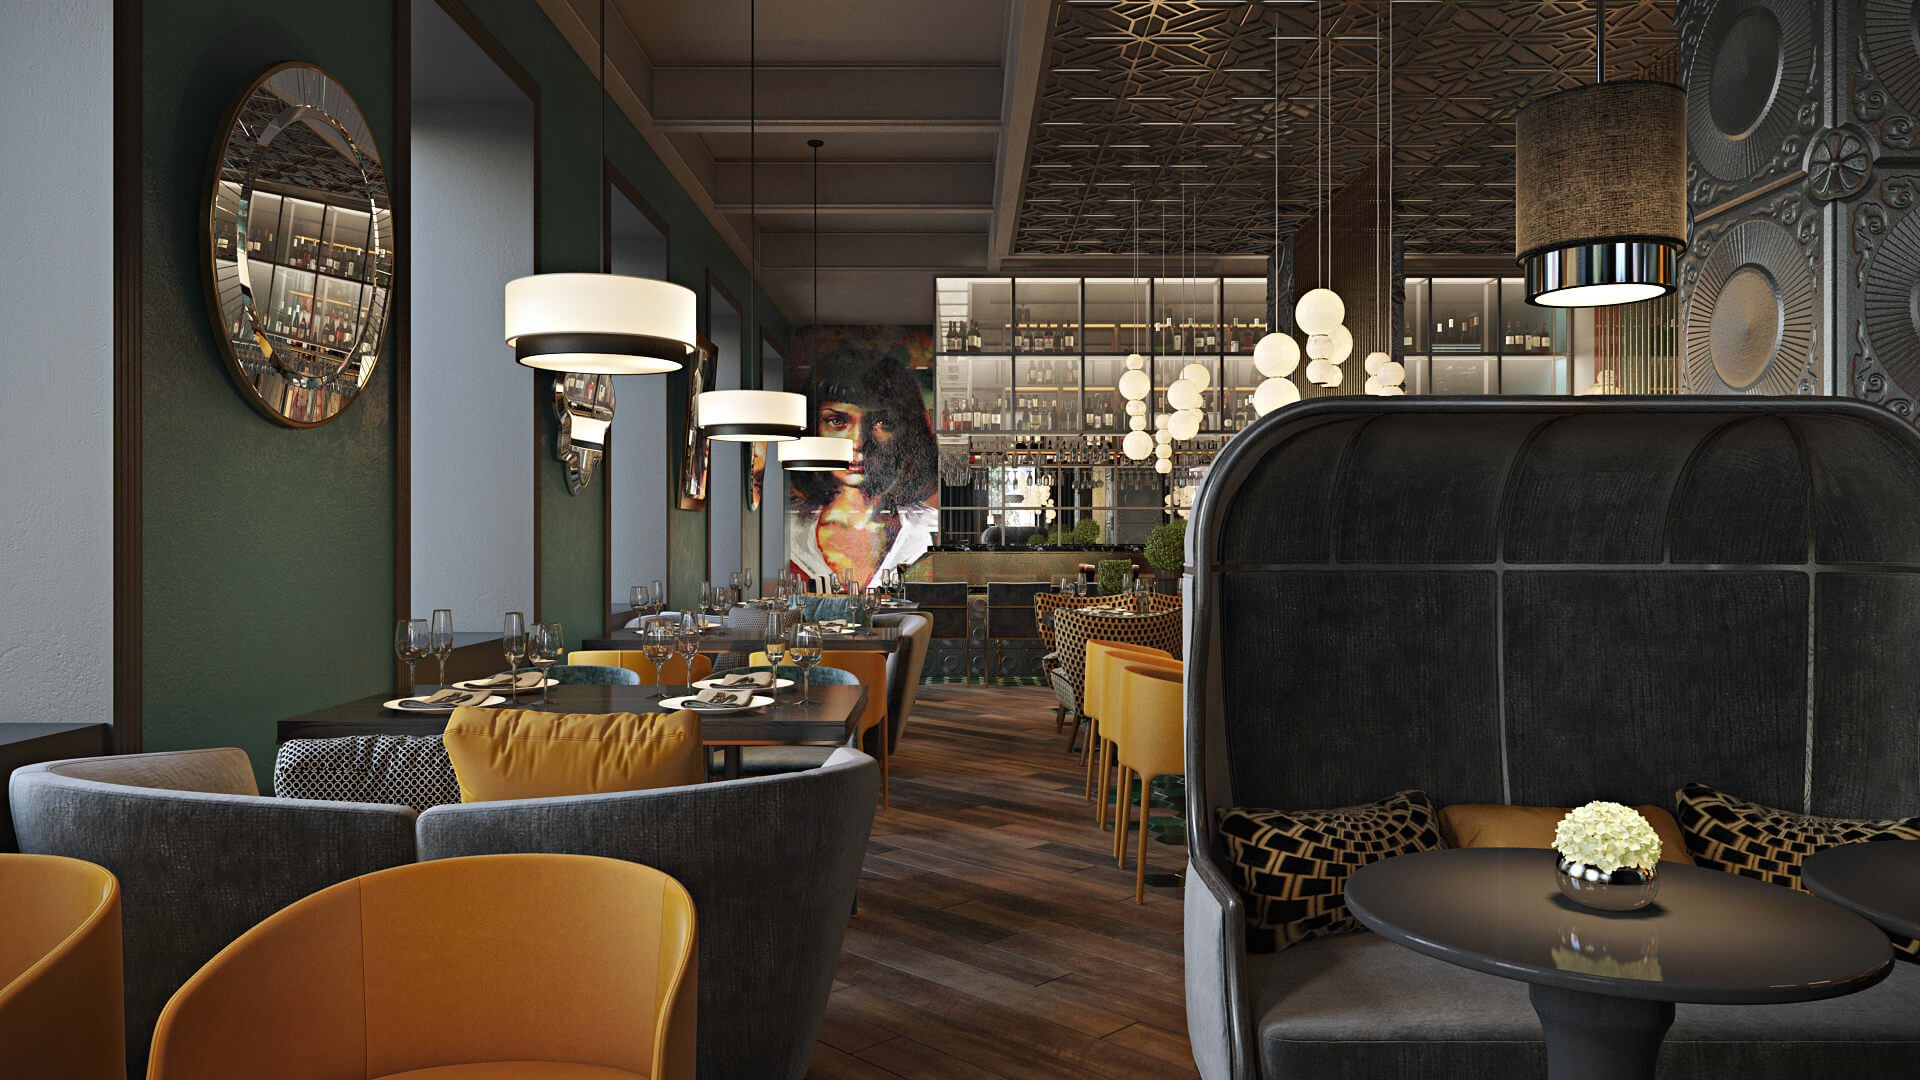 Photorealistic 3D Architectural Renderings To Highlight A Bright Restaurant Interior View24